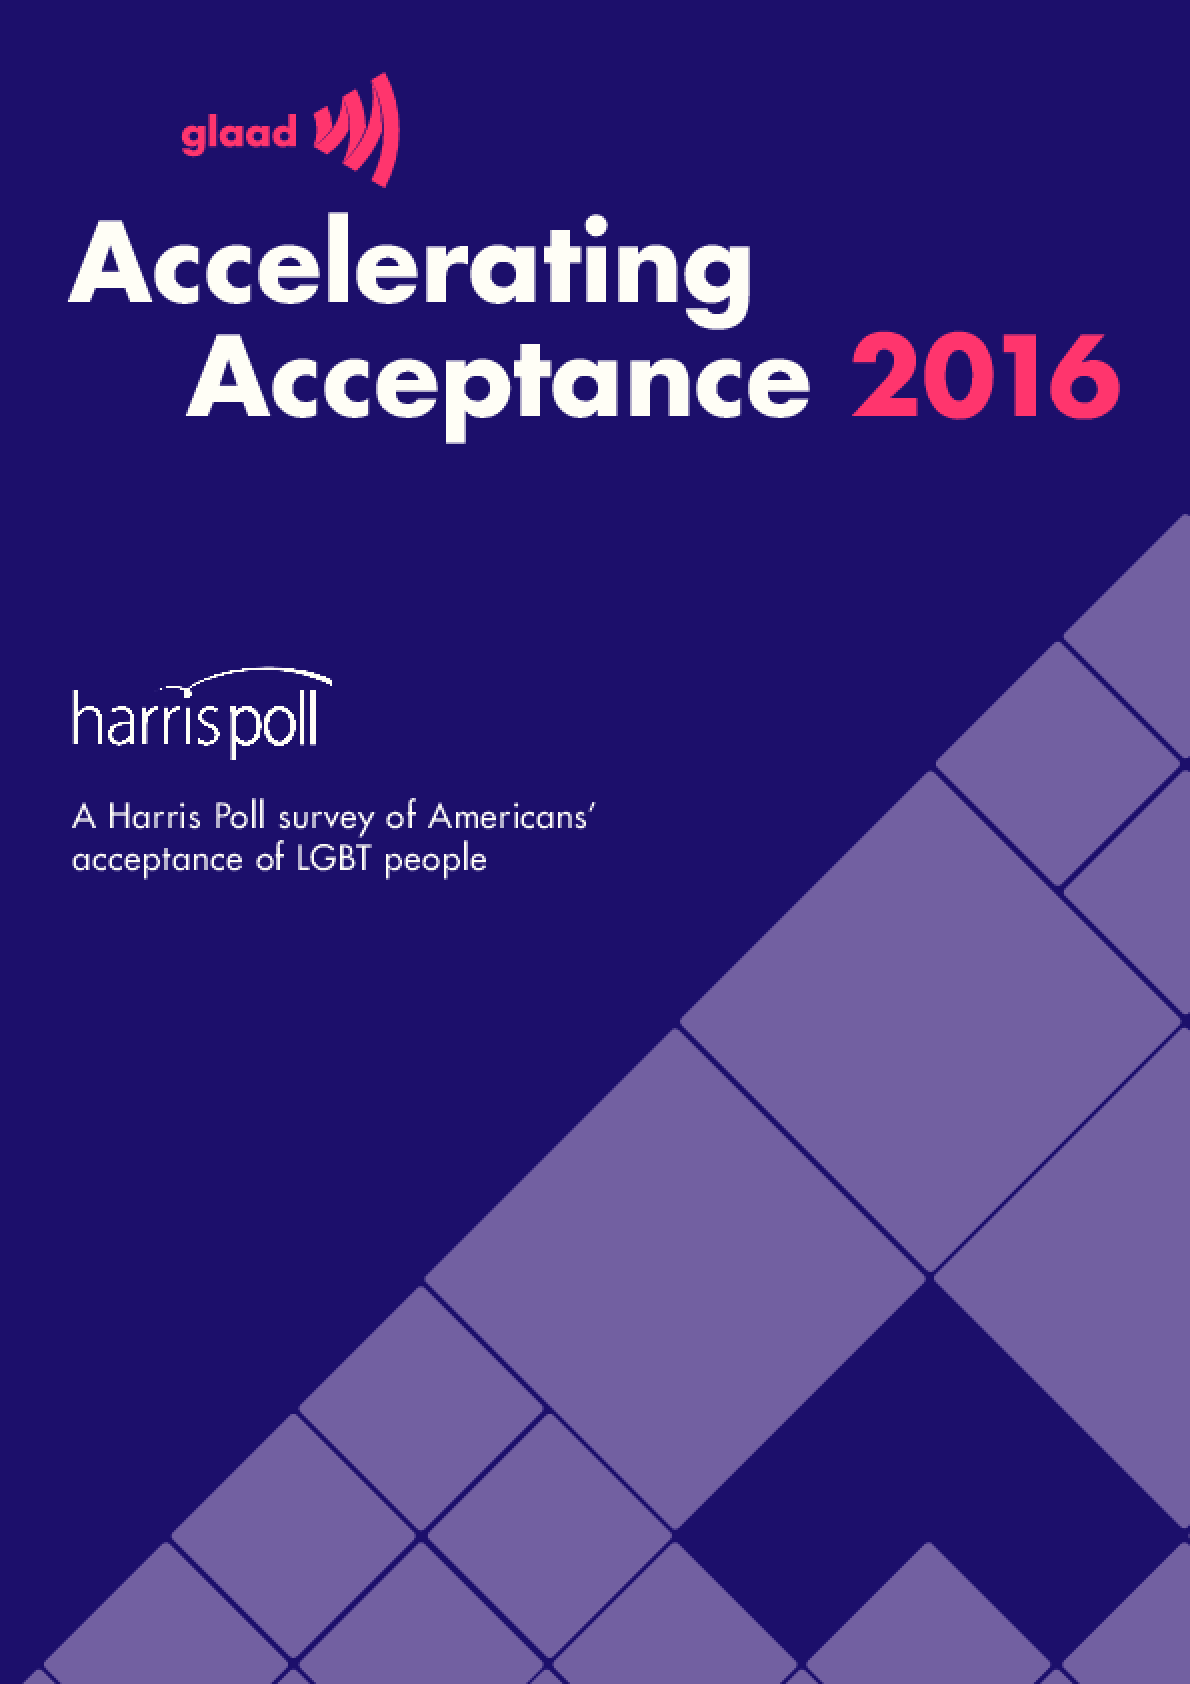 Accelerating Acceptance 2016